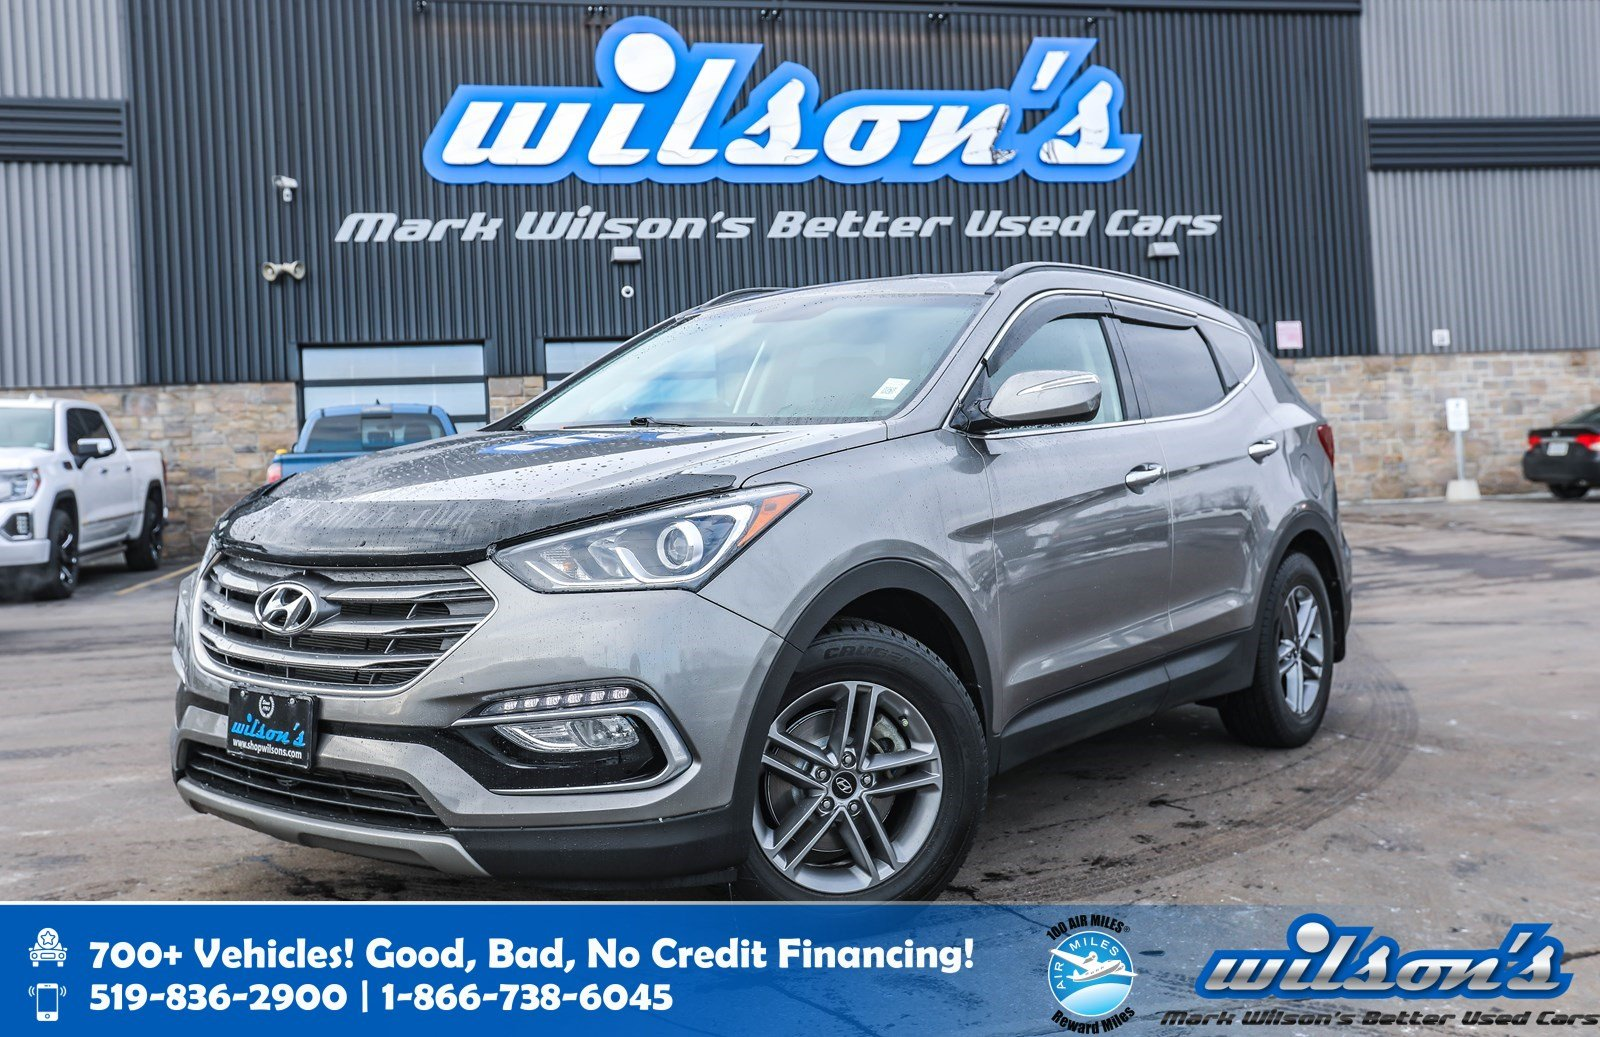 Certified Pre-Owned 2017 Hyundai Santa Fe Sport Premium AWD, Rear Camera, Bluetooth, Heated Steering + Seats, BlindSpot + Rear Traffic Alert